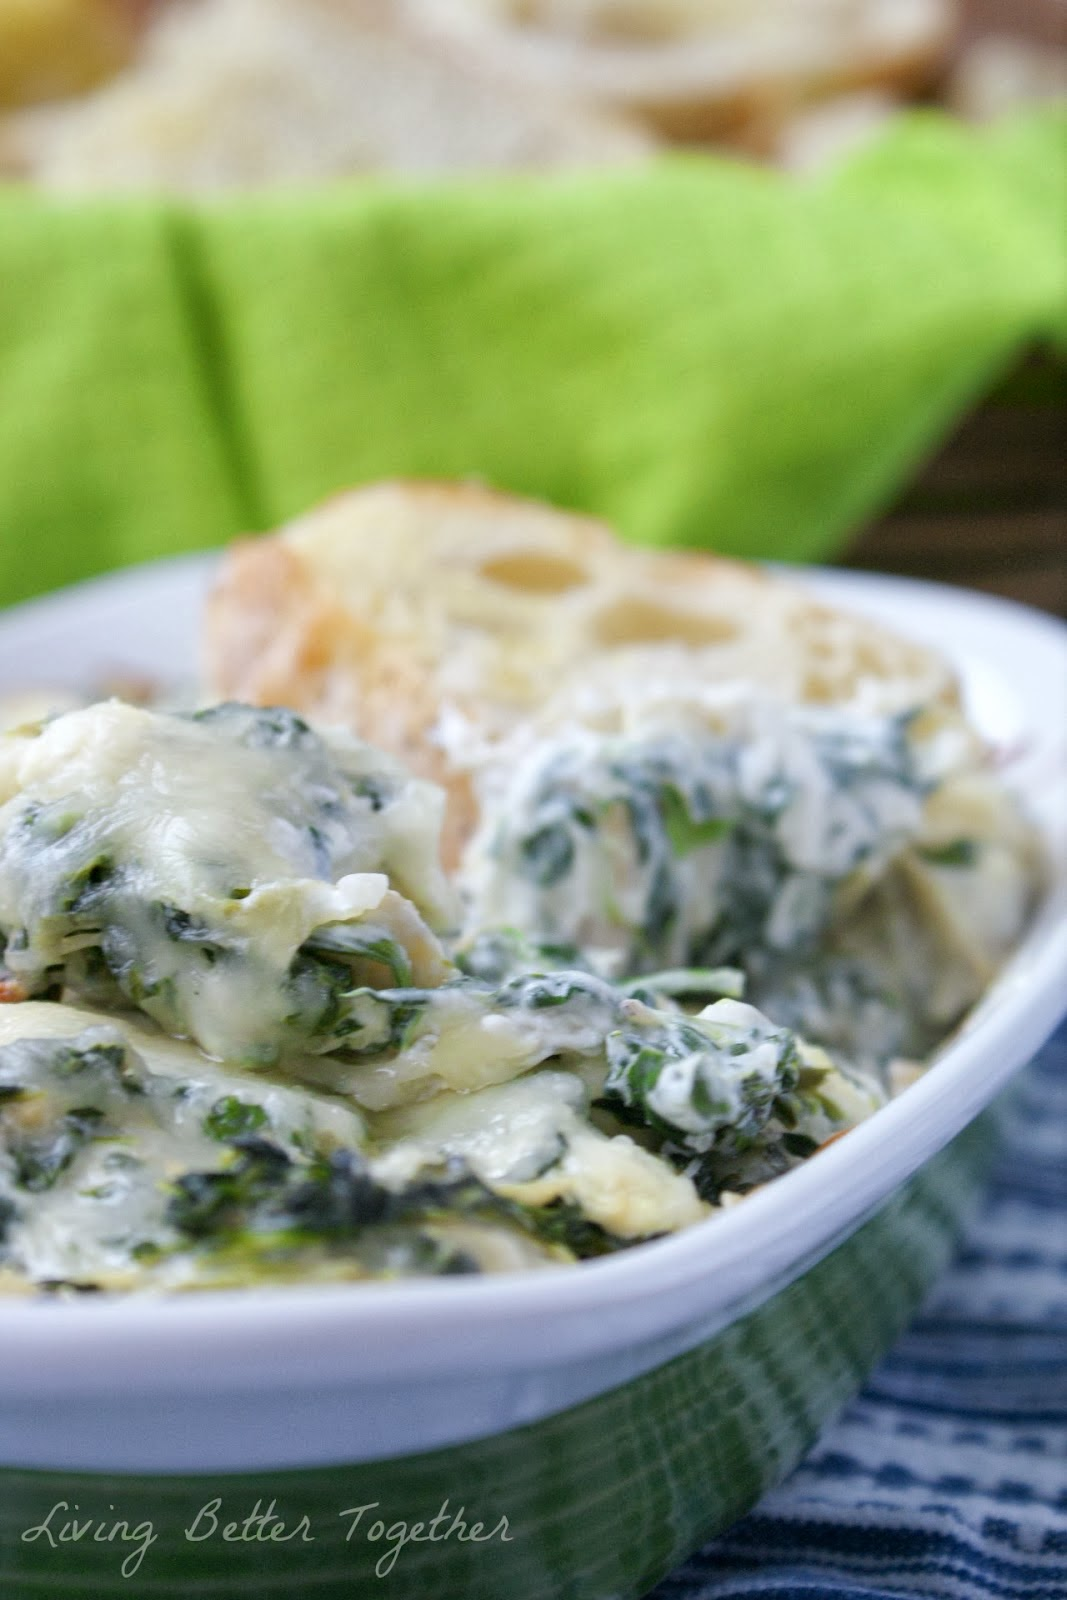 Baked Spinach & Artichoke Dip from Living Better Together for www.anyonita-nibbles.com